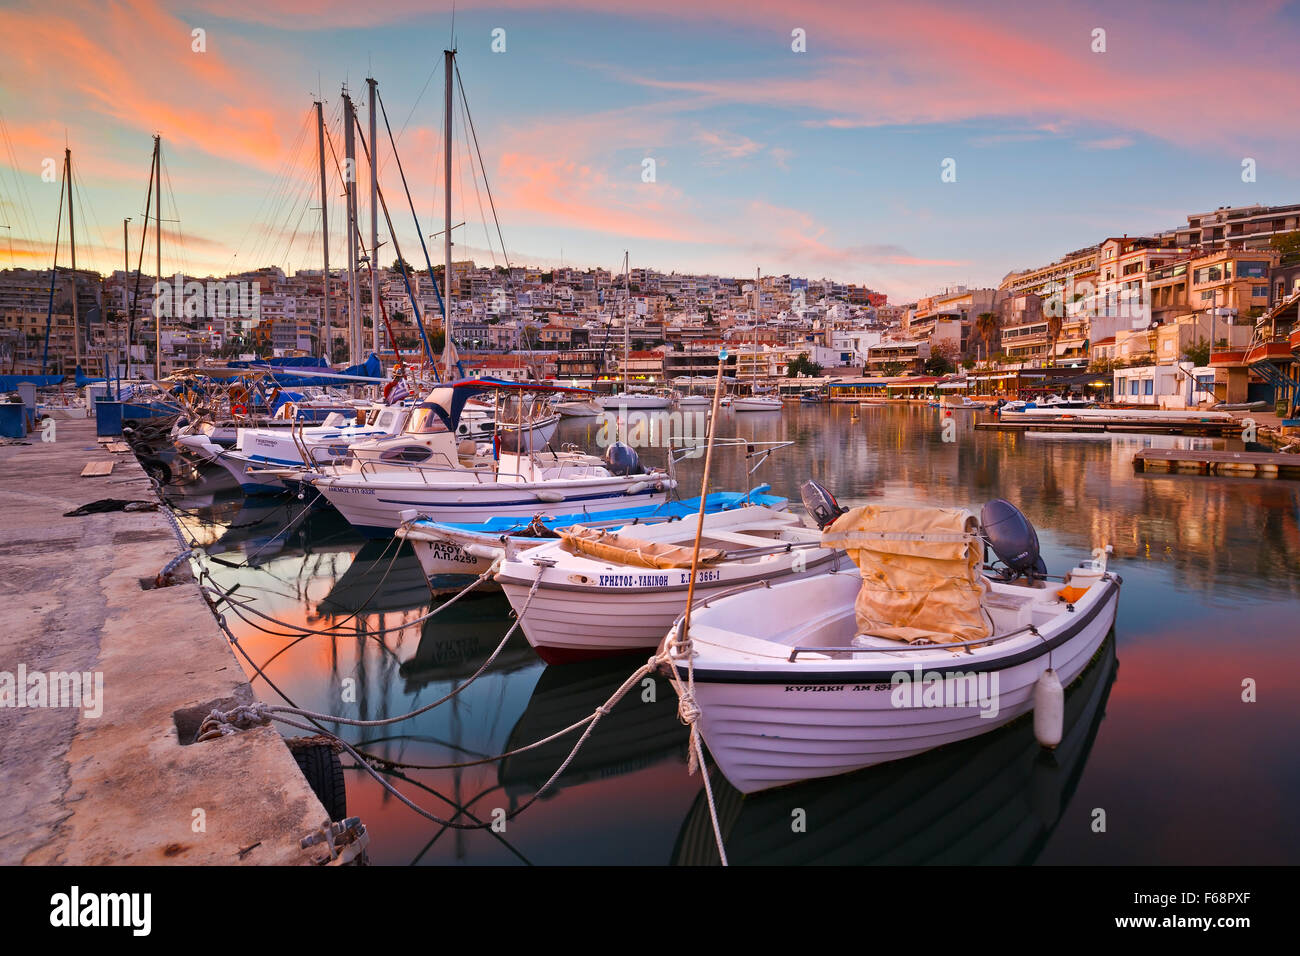 Boats mooring at a pier in Mikrolimano marina in Athens, Greece - Stock Image